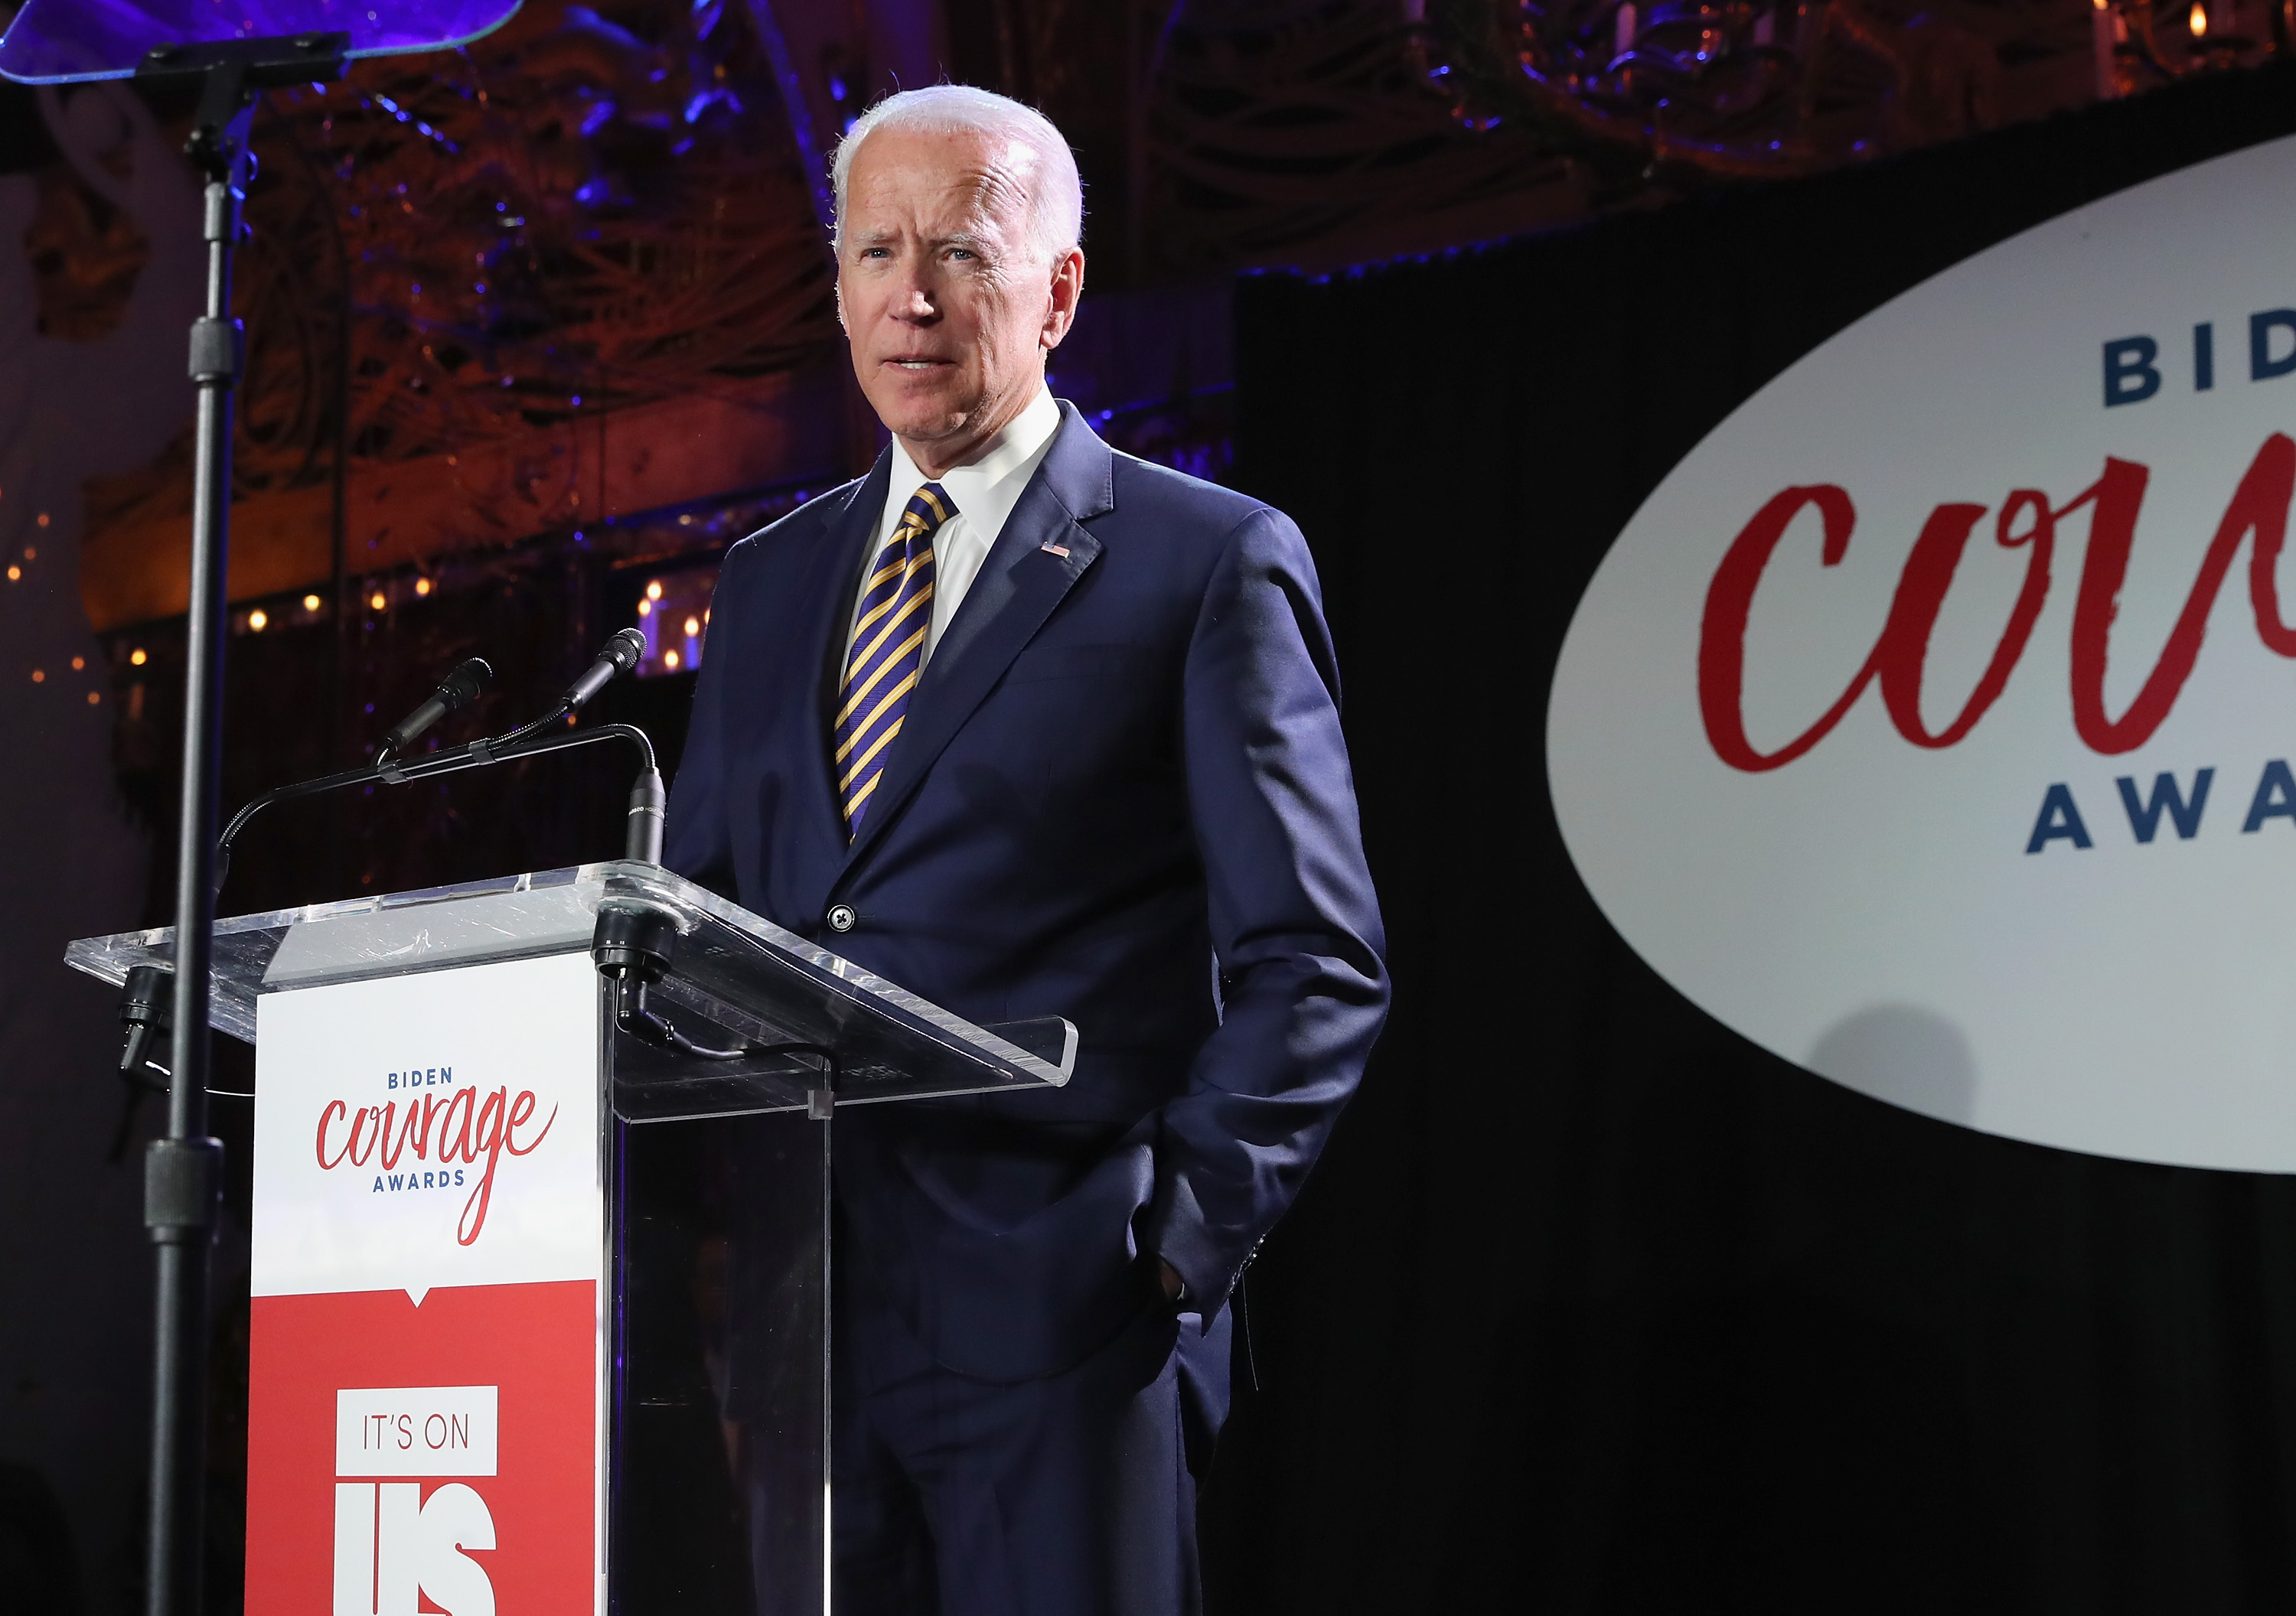 NEW YORK, NY - MARCH 26: Former Vice President of the United States, Joe Biden speaks onstage during The 2019 Biden Courage Awards at Russian Tea Room on March 26, 2019 in New York City. (Photo by Cindy Ord/Getty Images for It's On Us)